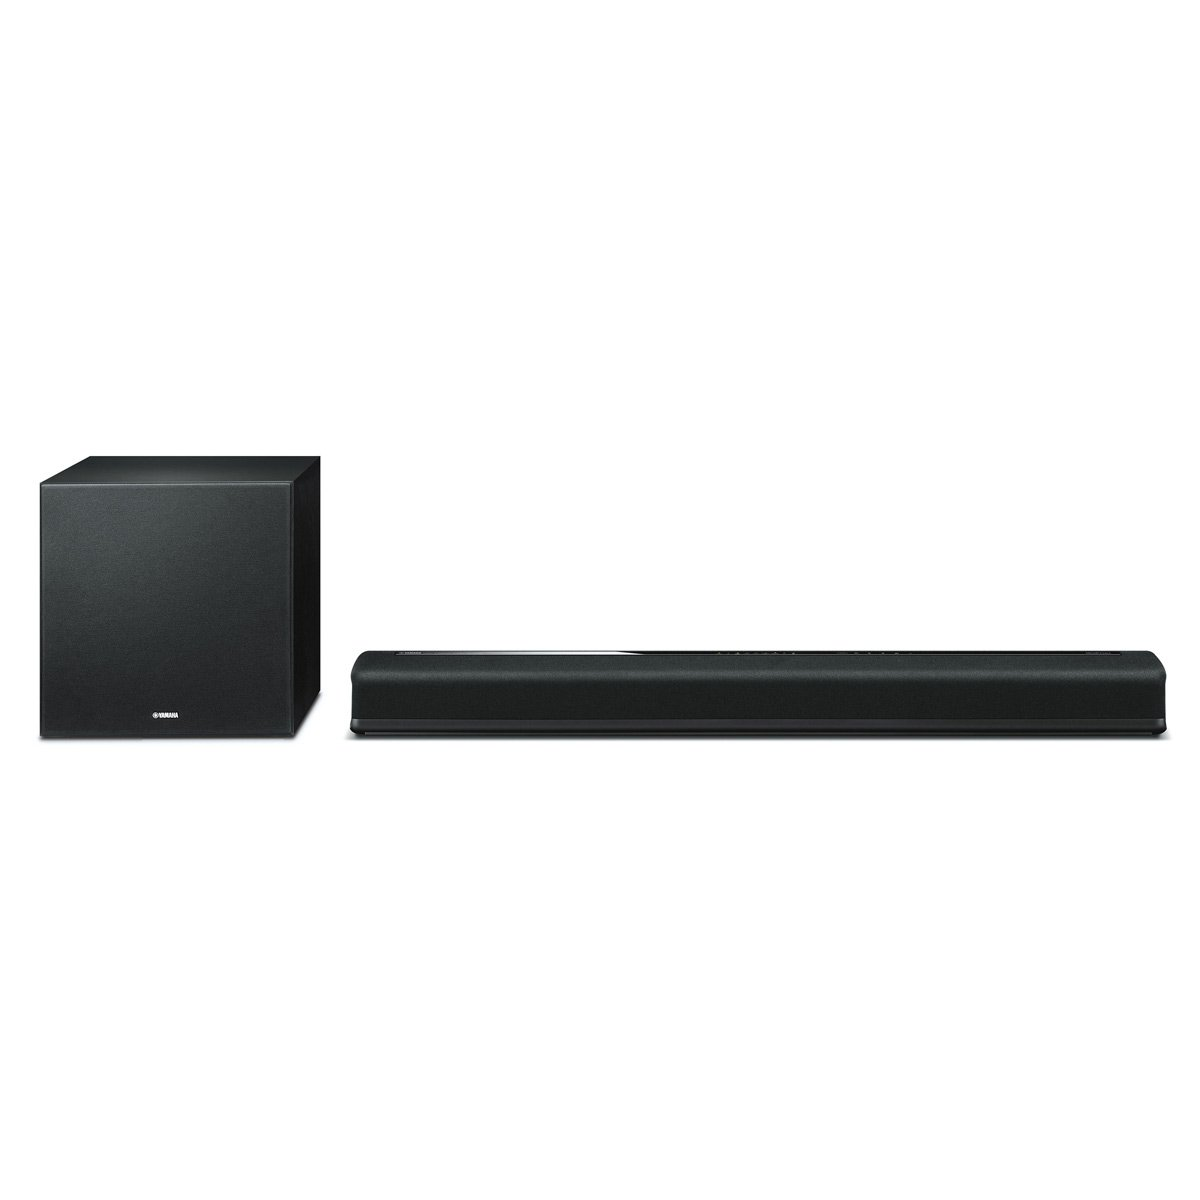 Yamaha YAS-706 MusicCast Wireless Multiroom Sound Bar